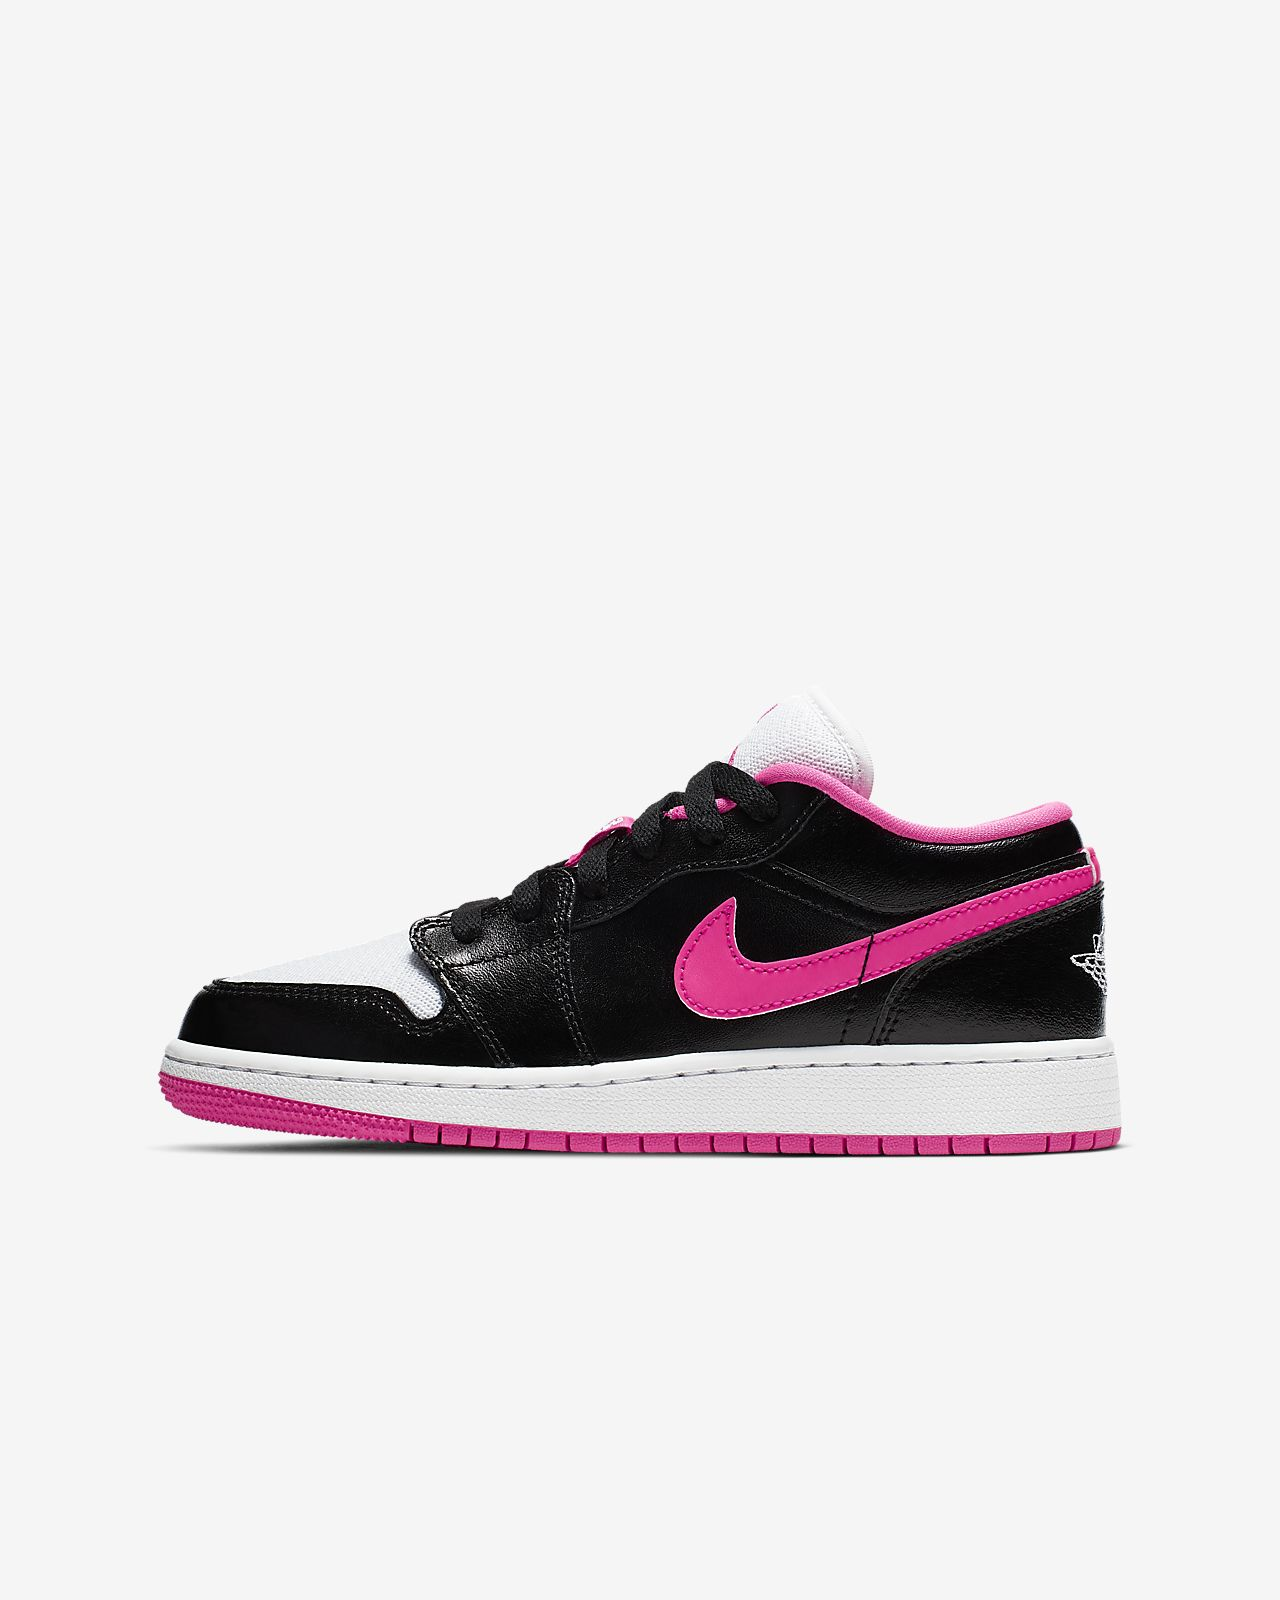 e8b47b1538 Air Jordan 1 Low Big Kids' (Girls') Shoe. Nike.com